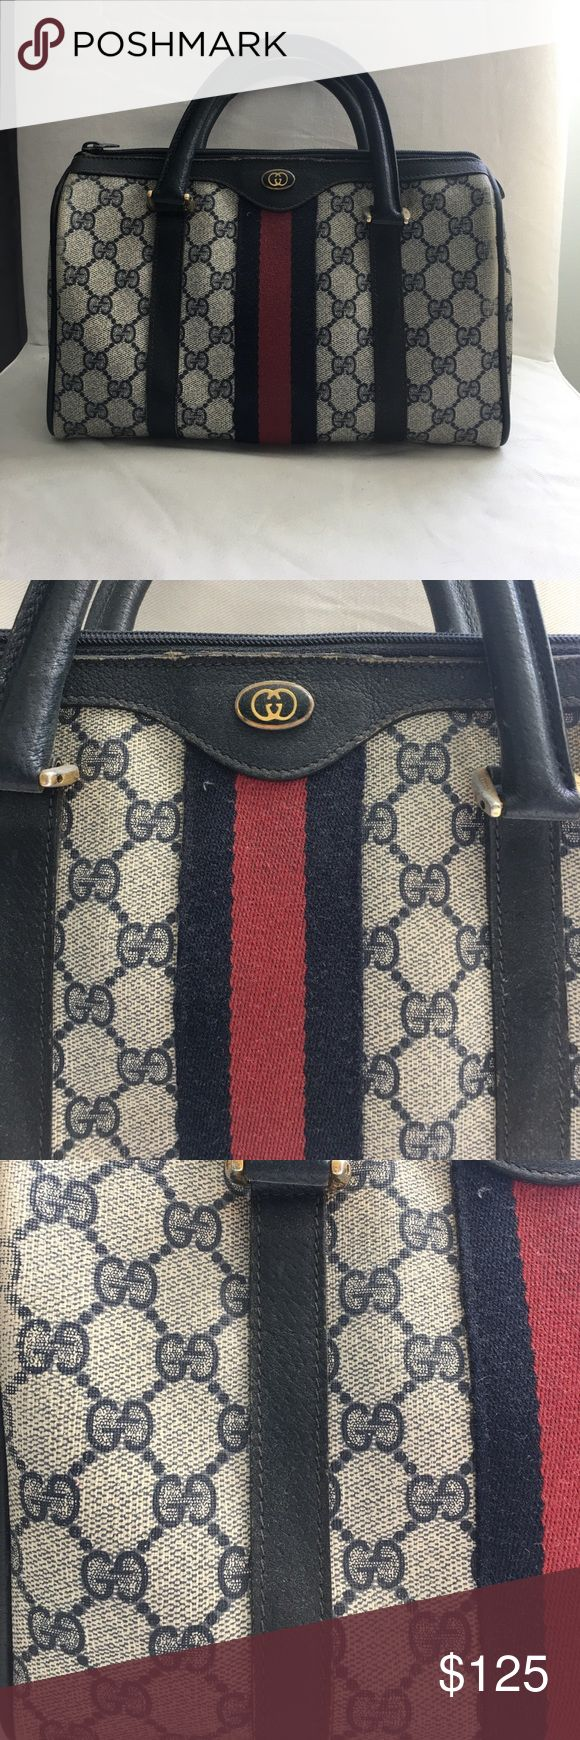 Vintage Gucci Purse Vintage Gucci Purse - very worn inside and outside of bag (priced accordingly) - Gucci monogram bag Gucci Bags